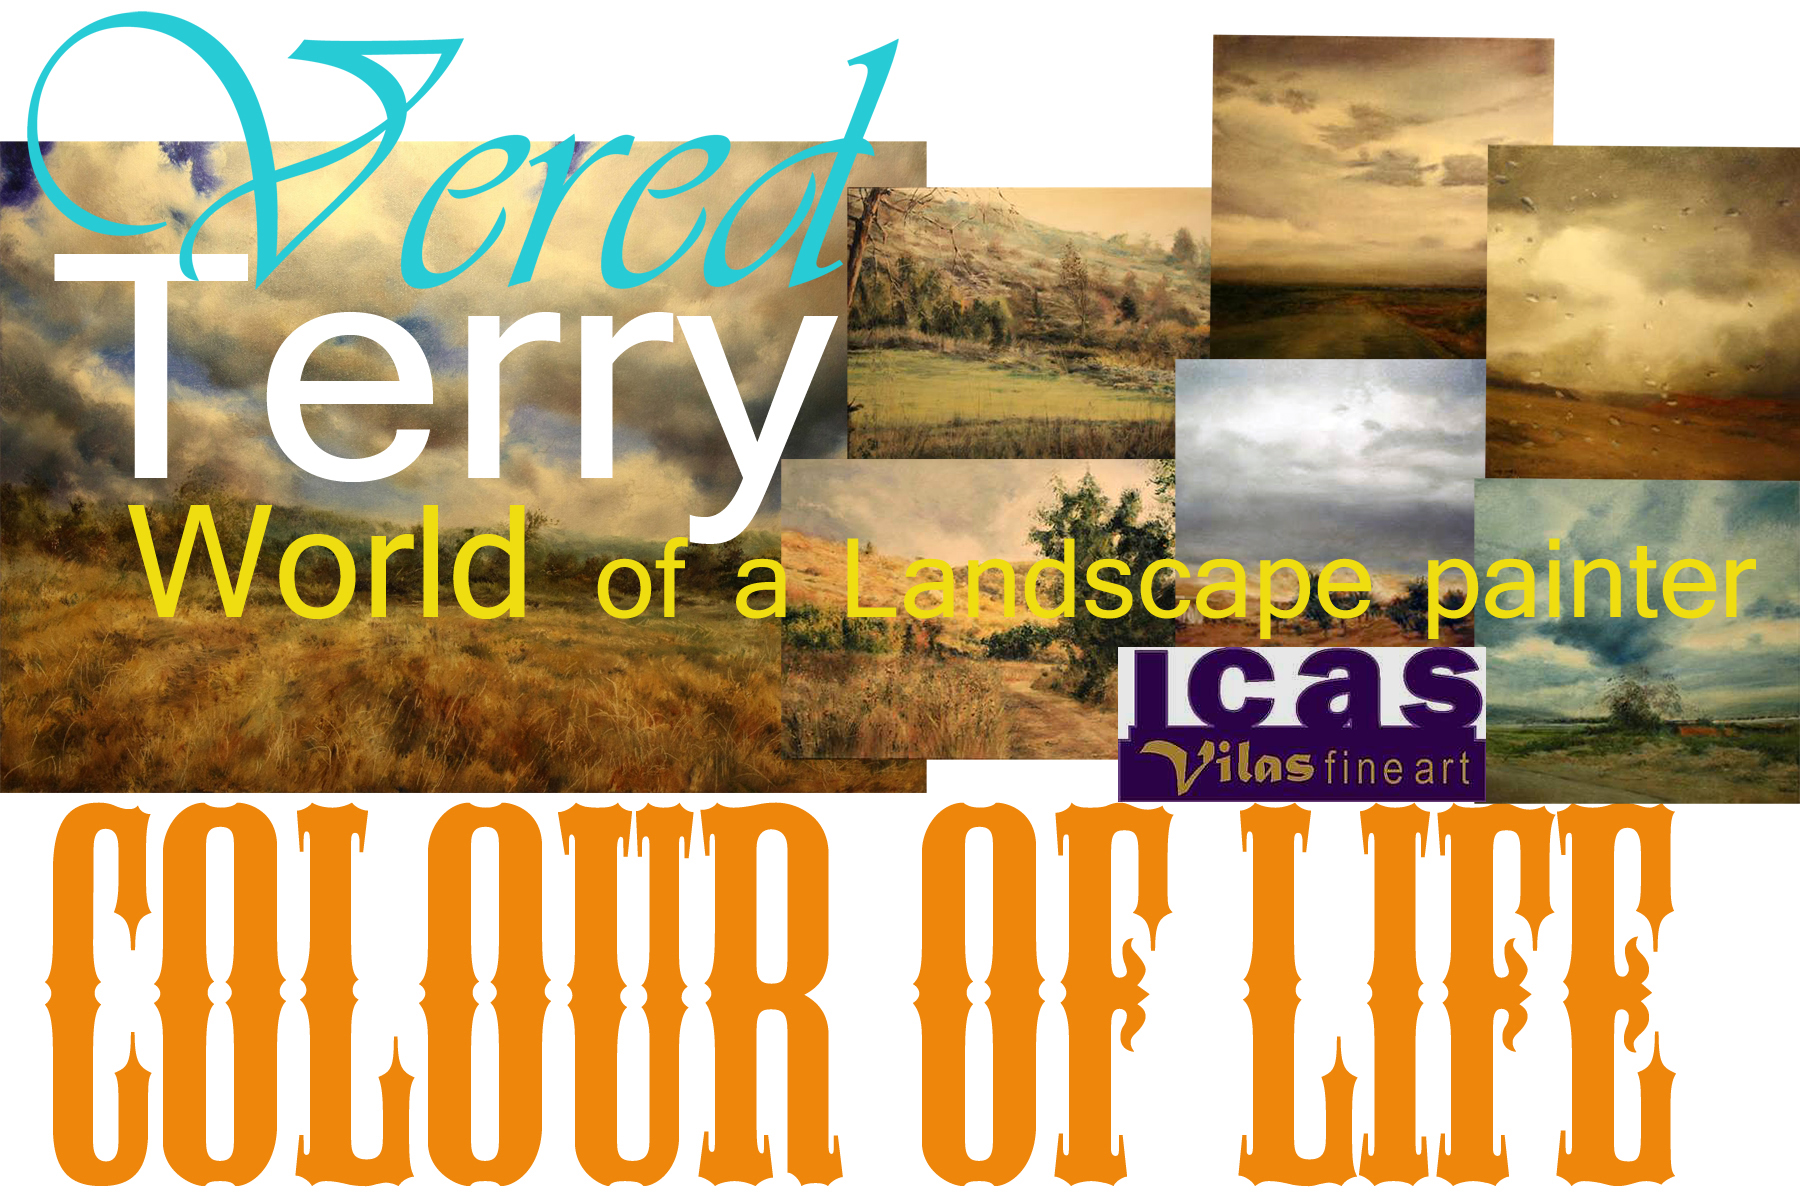 - globalization-and-culture-colour-of-life-vered-terry1